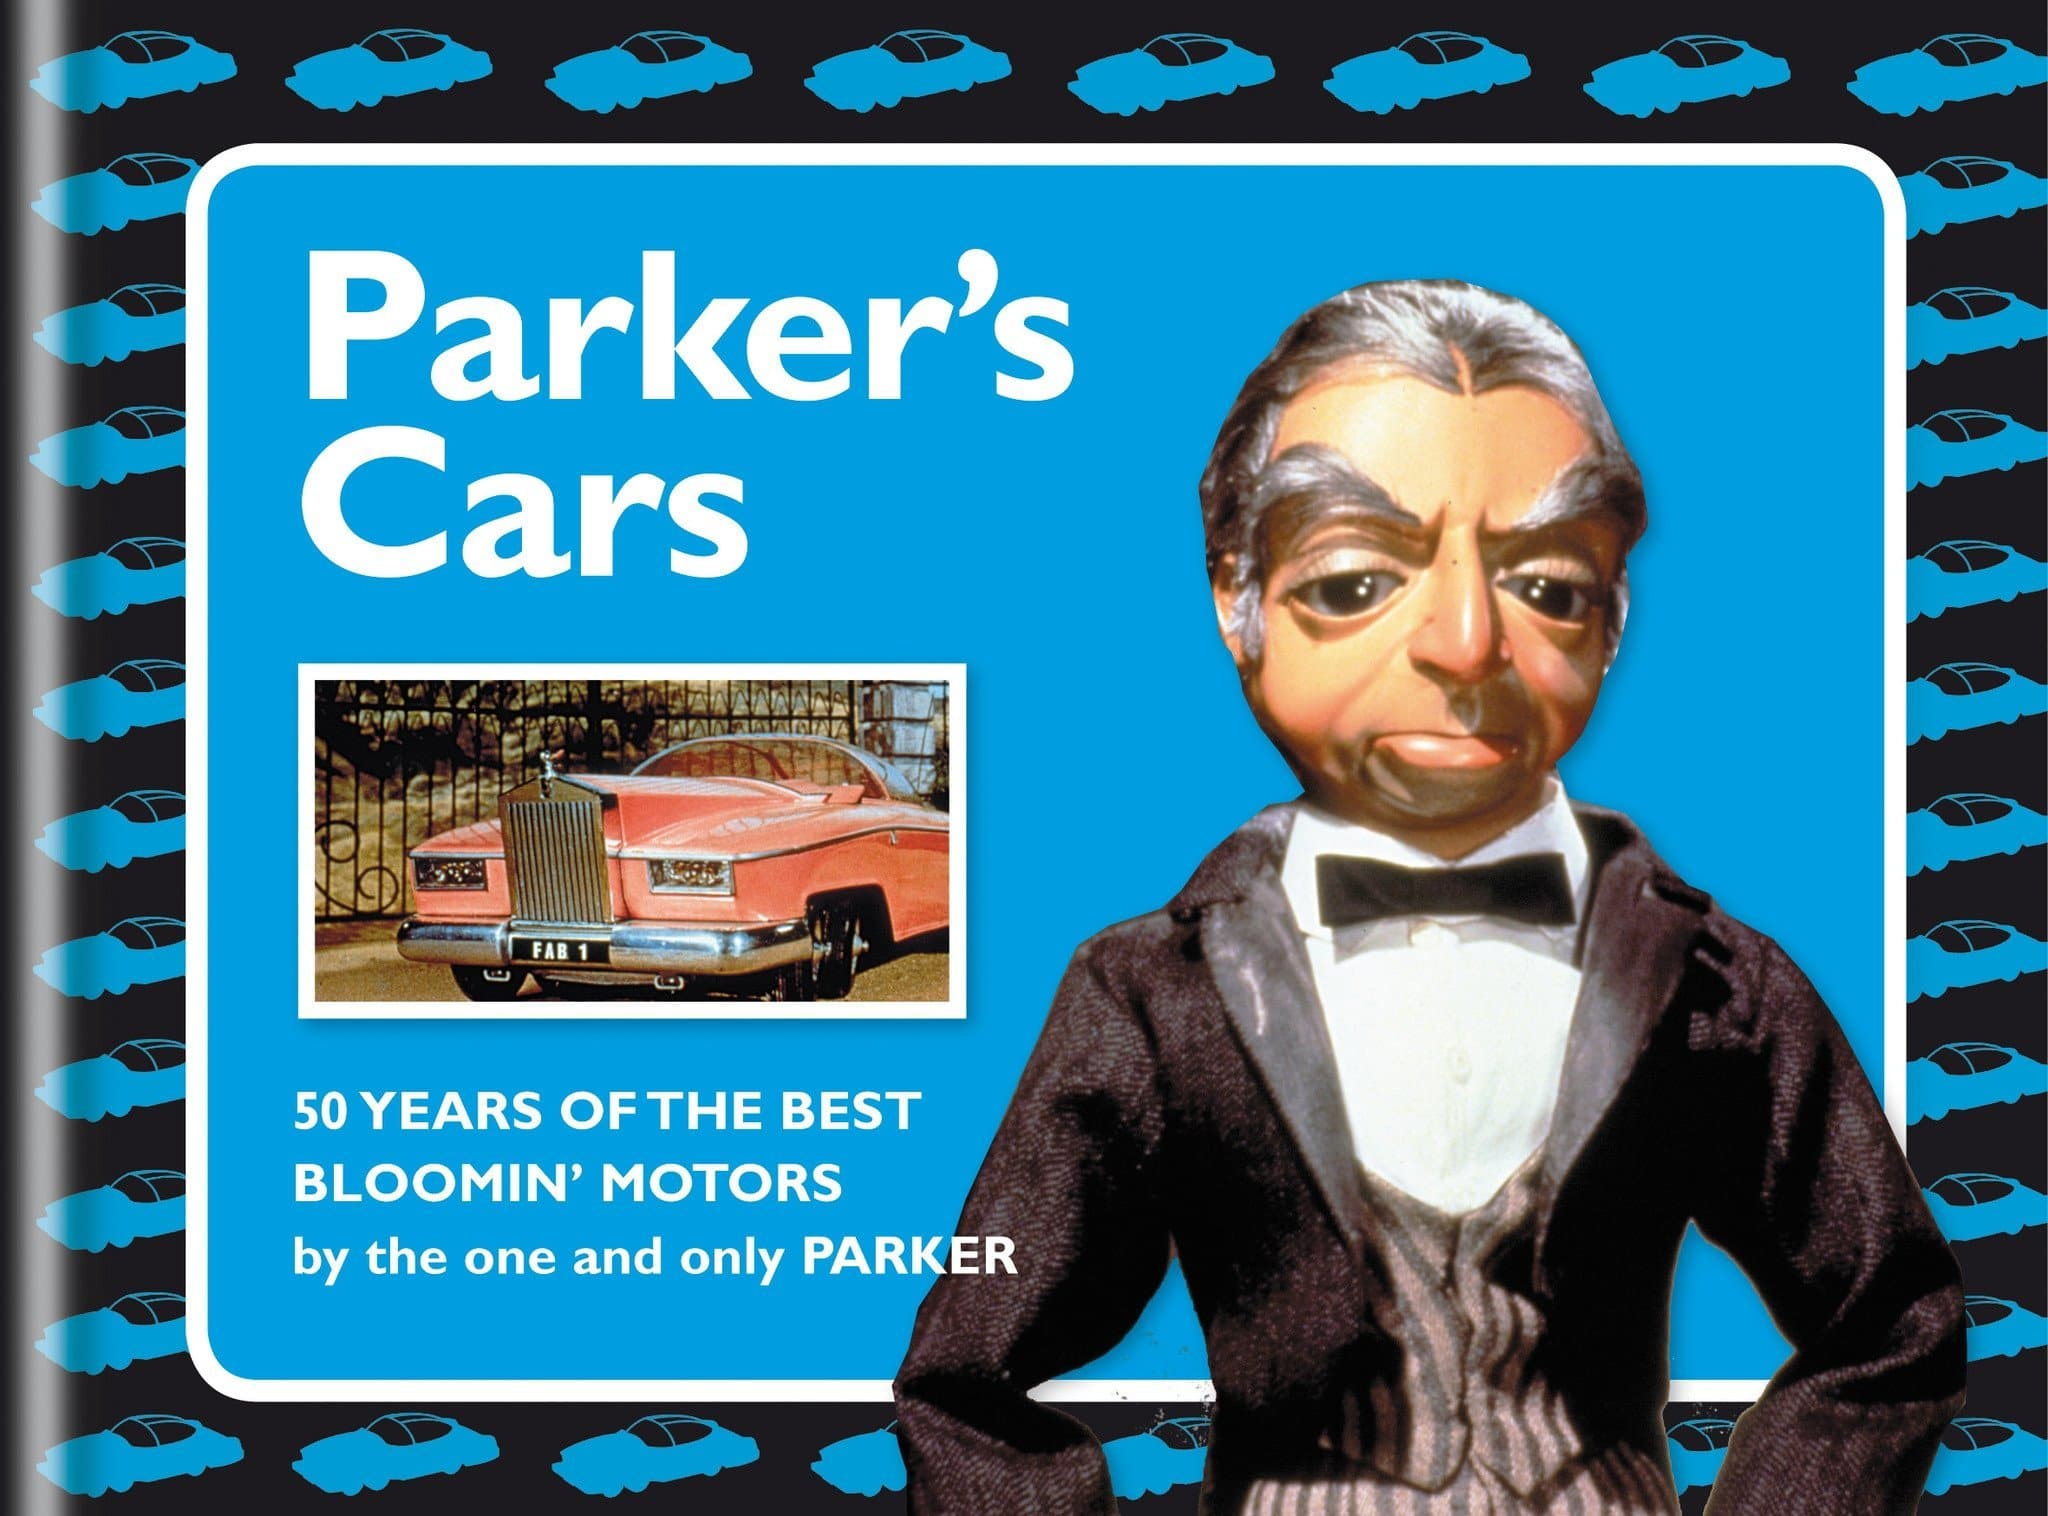 Parker's Cars - 50 Years of the Best Bloomin' Motors - by Aaron Gold - The Gerry Anderson Store